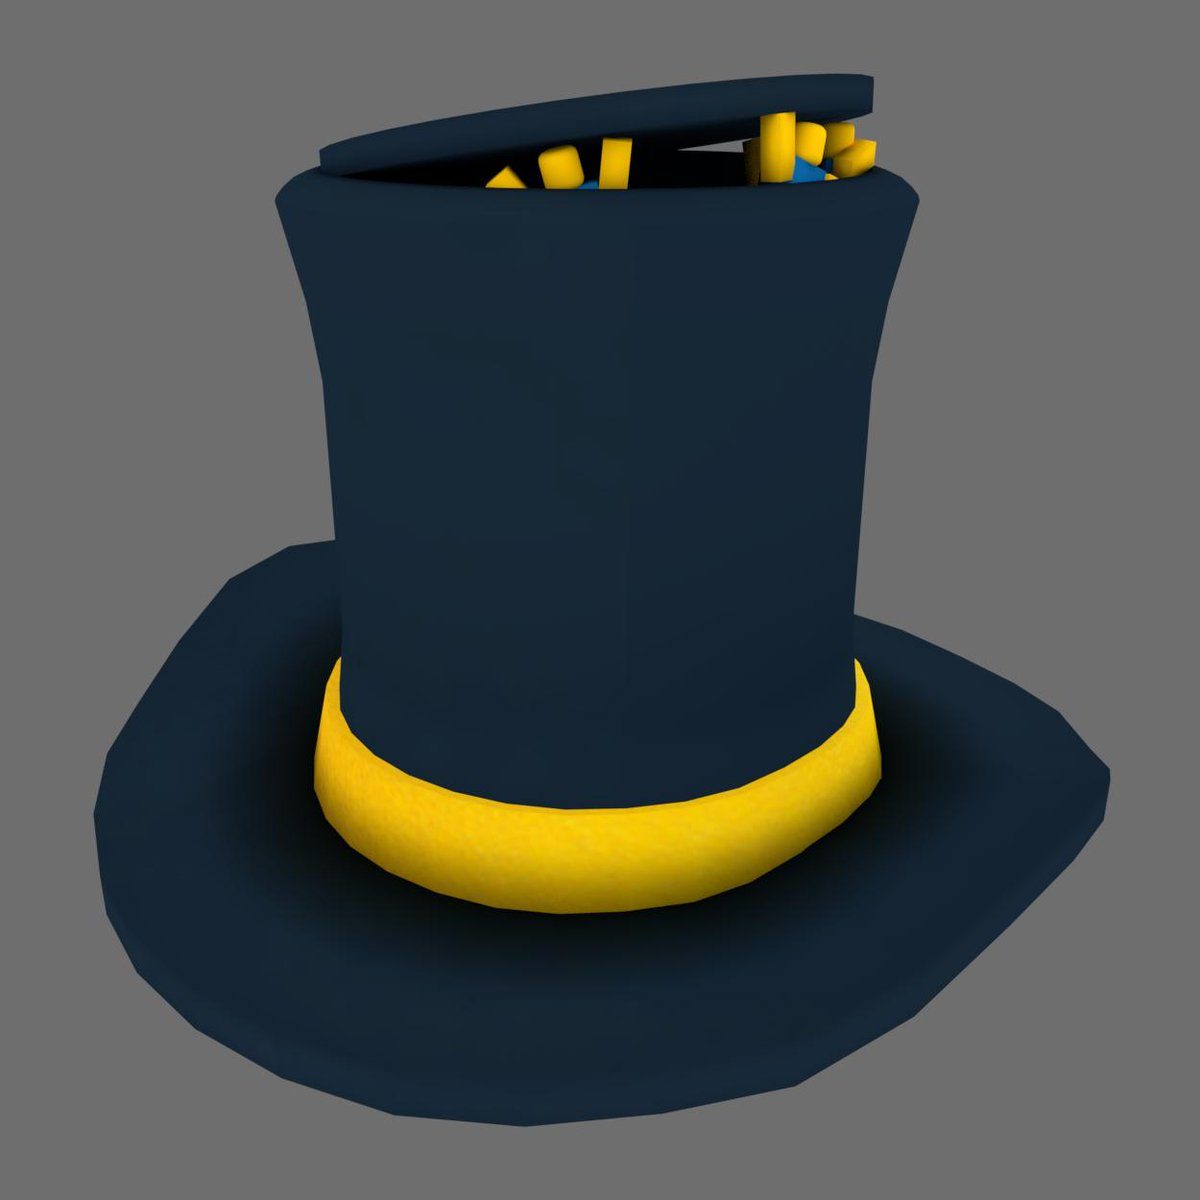 Try On Hats D Roblox Mas On Twitter Ugc Concept 13 Peeping Noobs Top Hat Price 500r Description Say Hello To My Little Noobs There S 4 Visible Noobs But There S 5 In The Hat Import This Hat